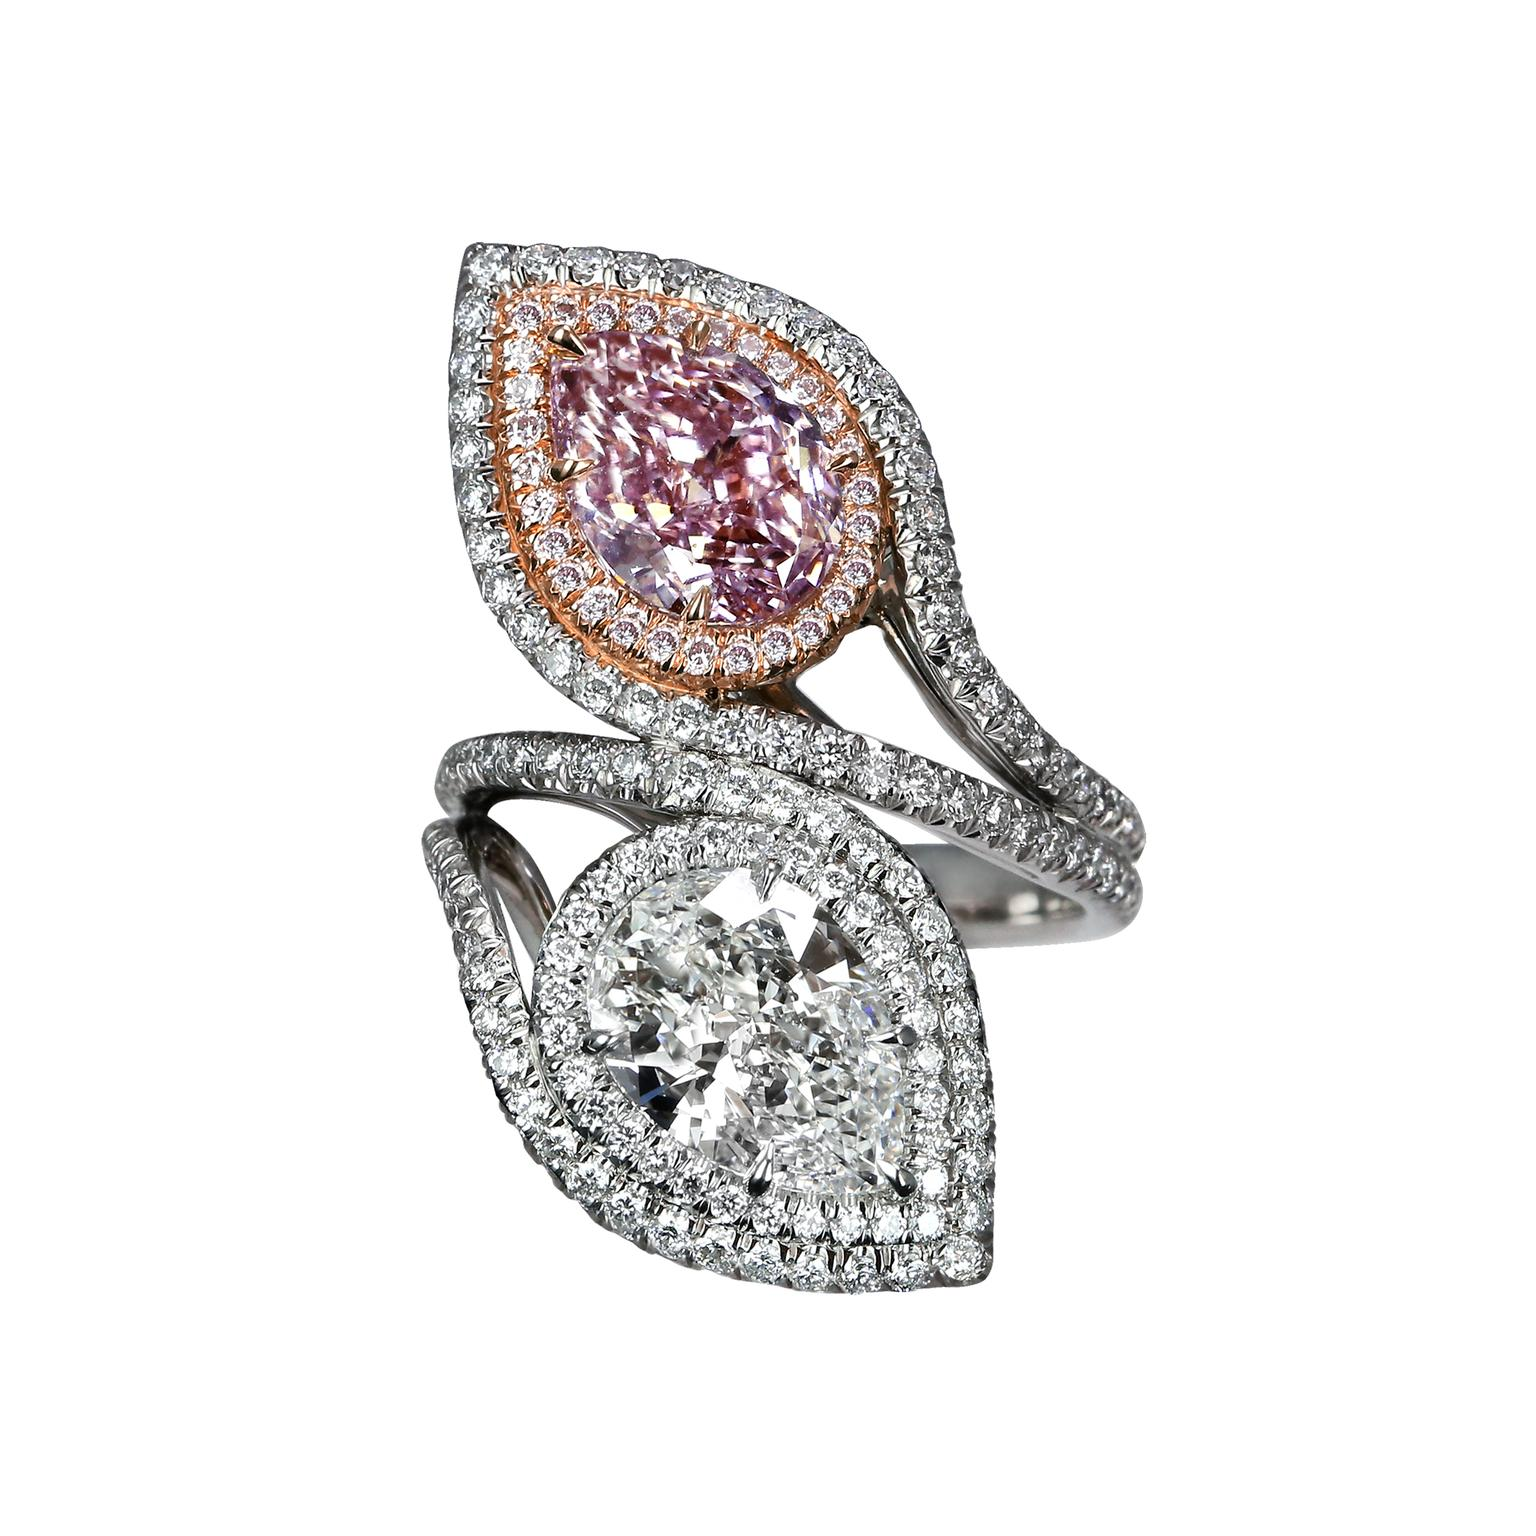 Jacob and co pink diamond ring